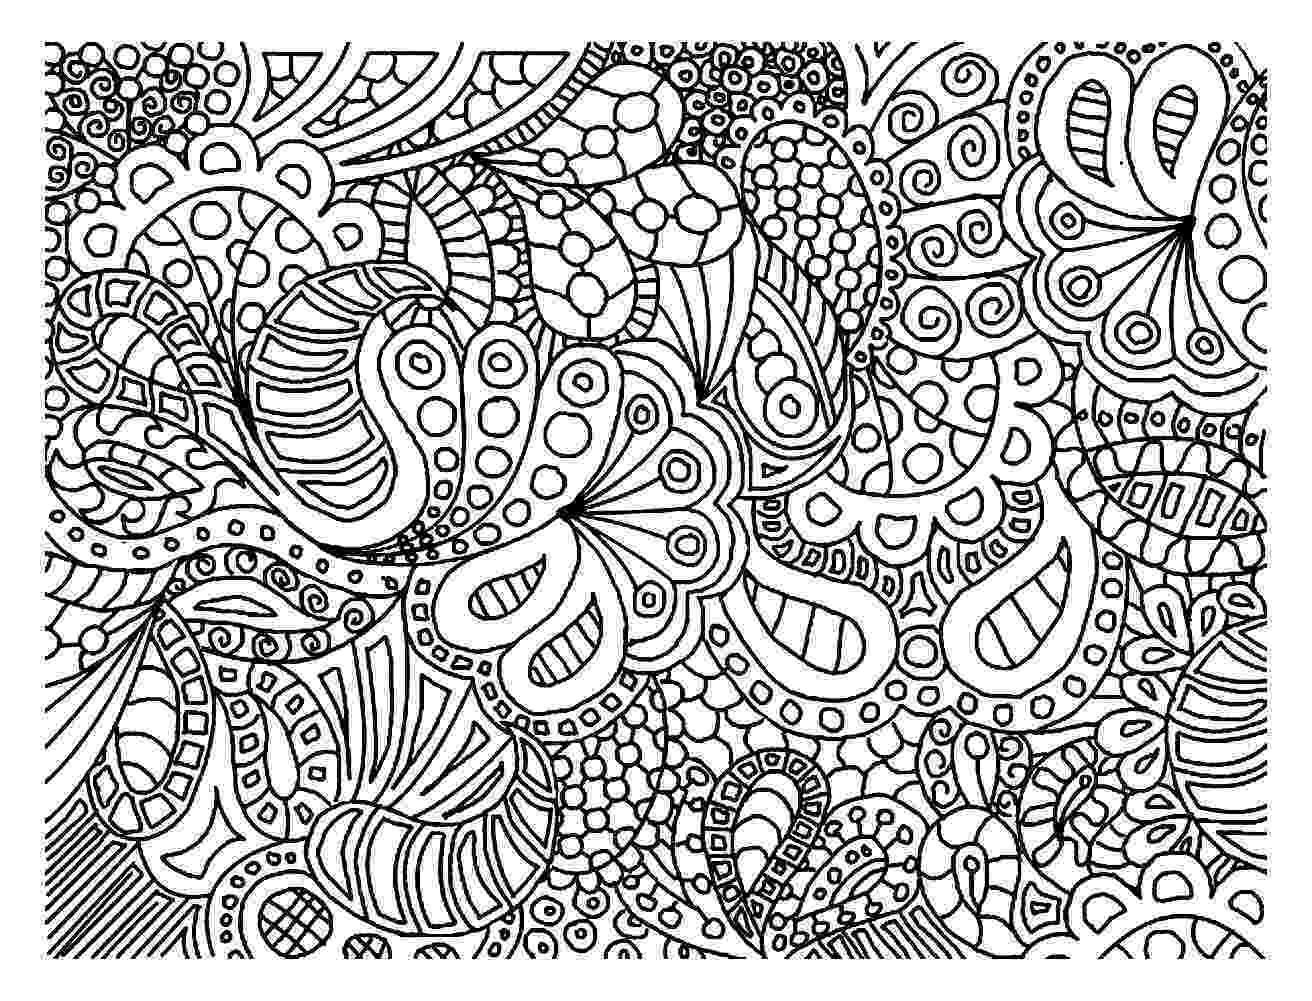 doodle art colouring doodle art to color for children doodle art kids colouring doodle art